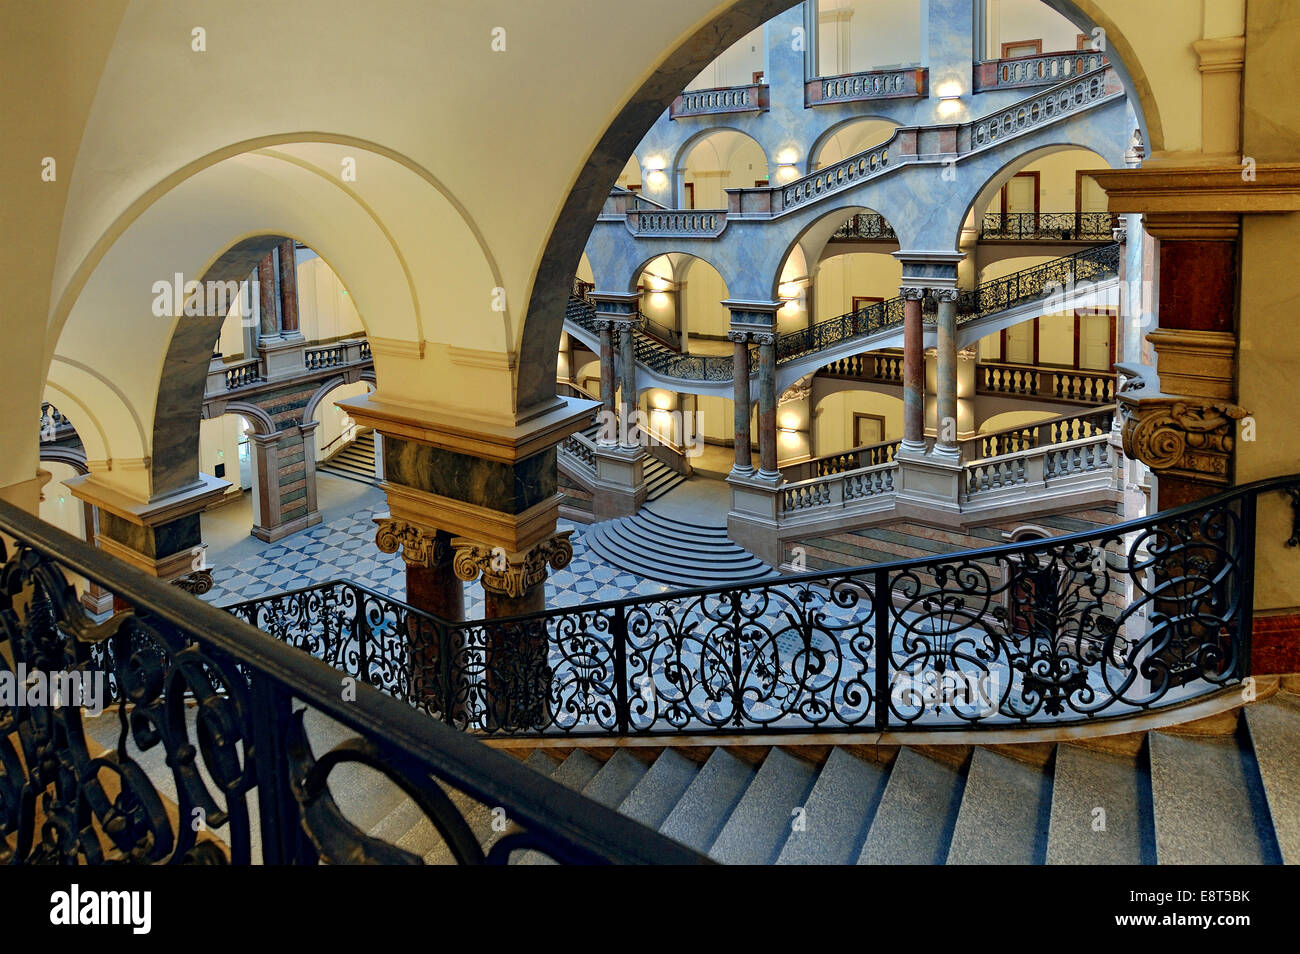 Staircase, Palace of Justice, Munich, Bavaria, Germany - Stock Image